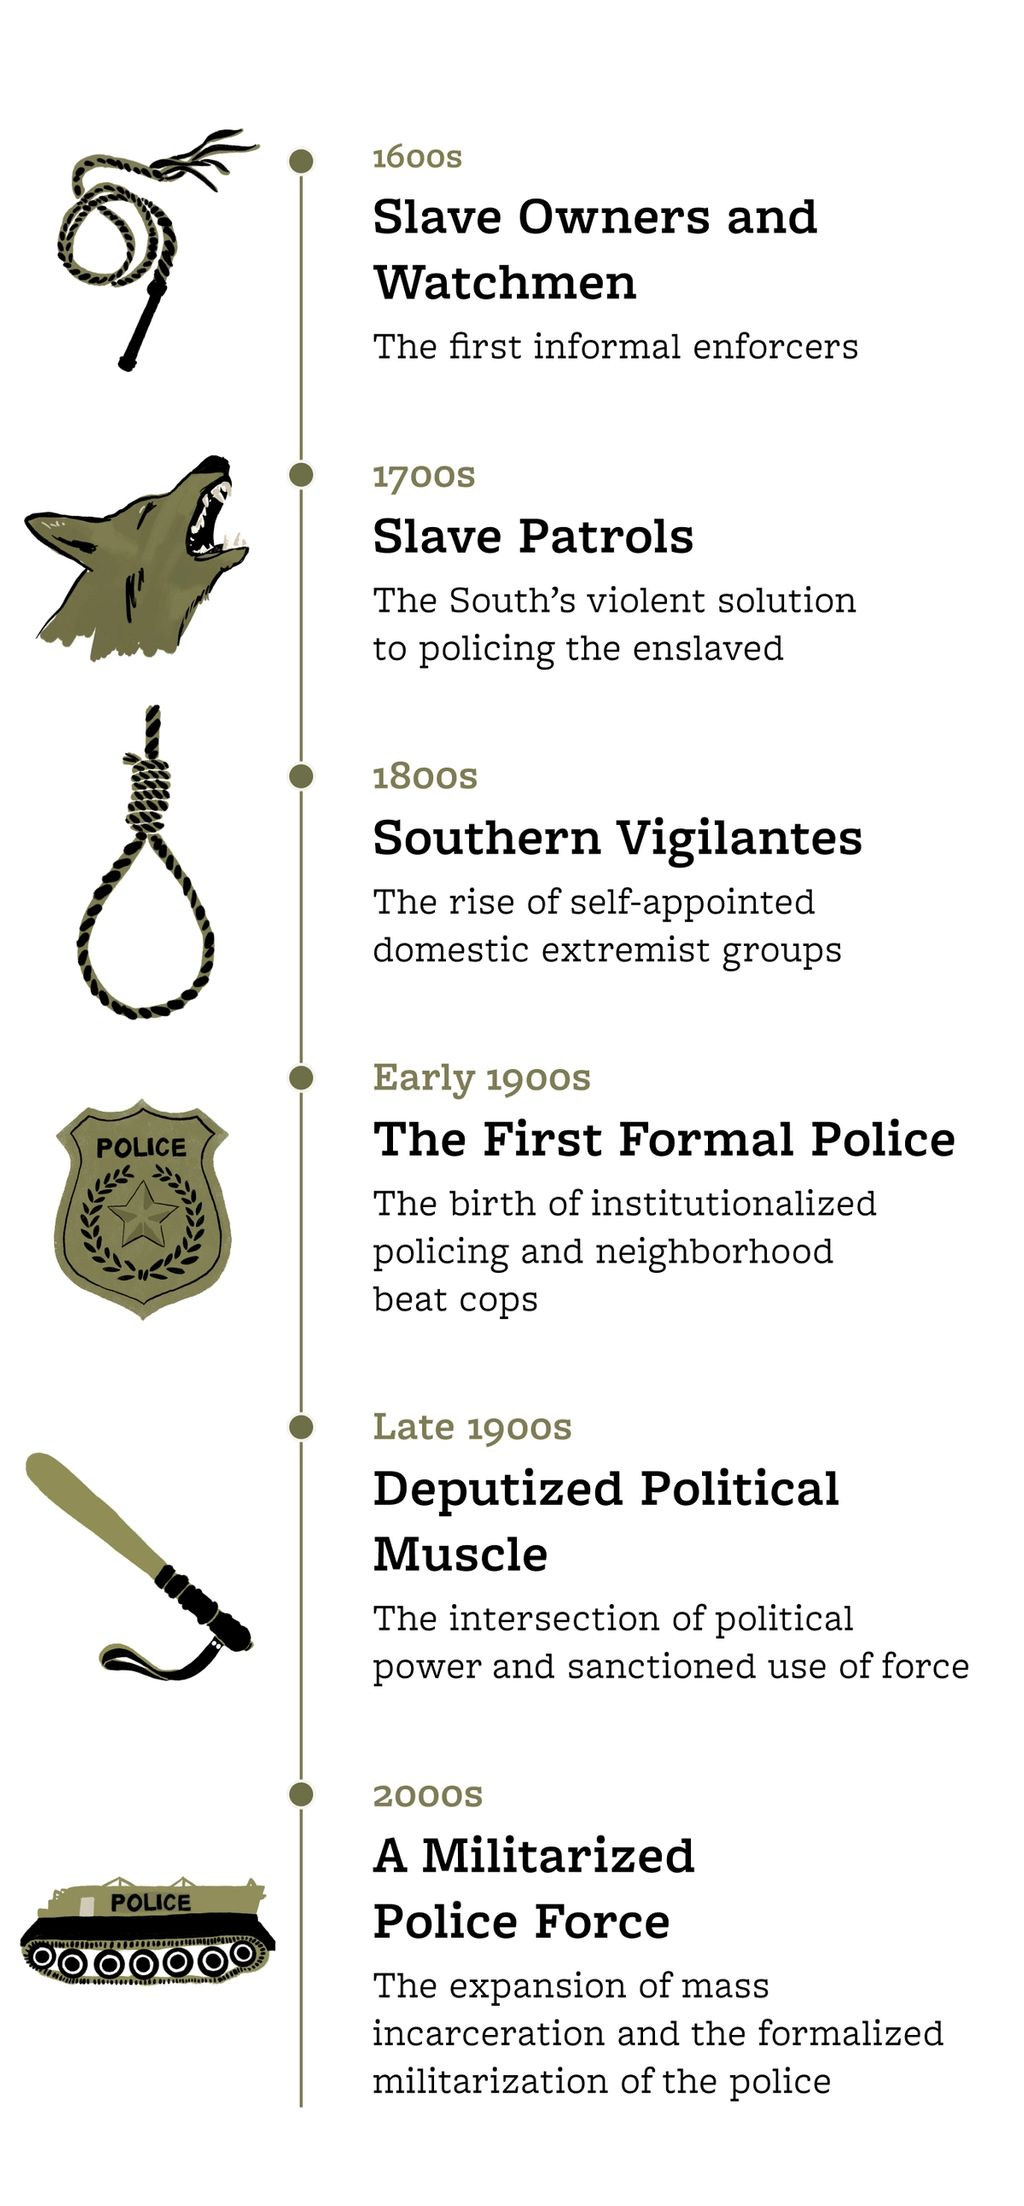 Infographic depicting the phases of policing from the 1600s to the early 2000s